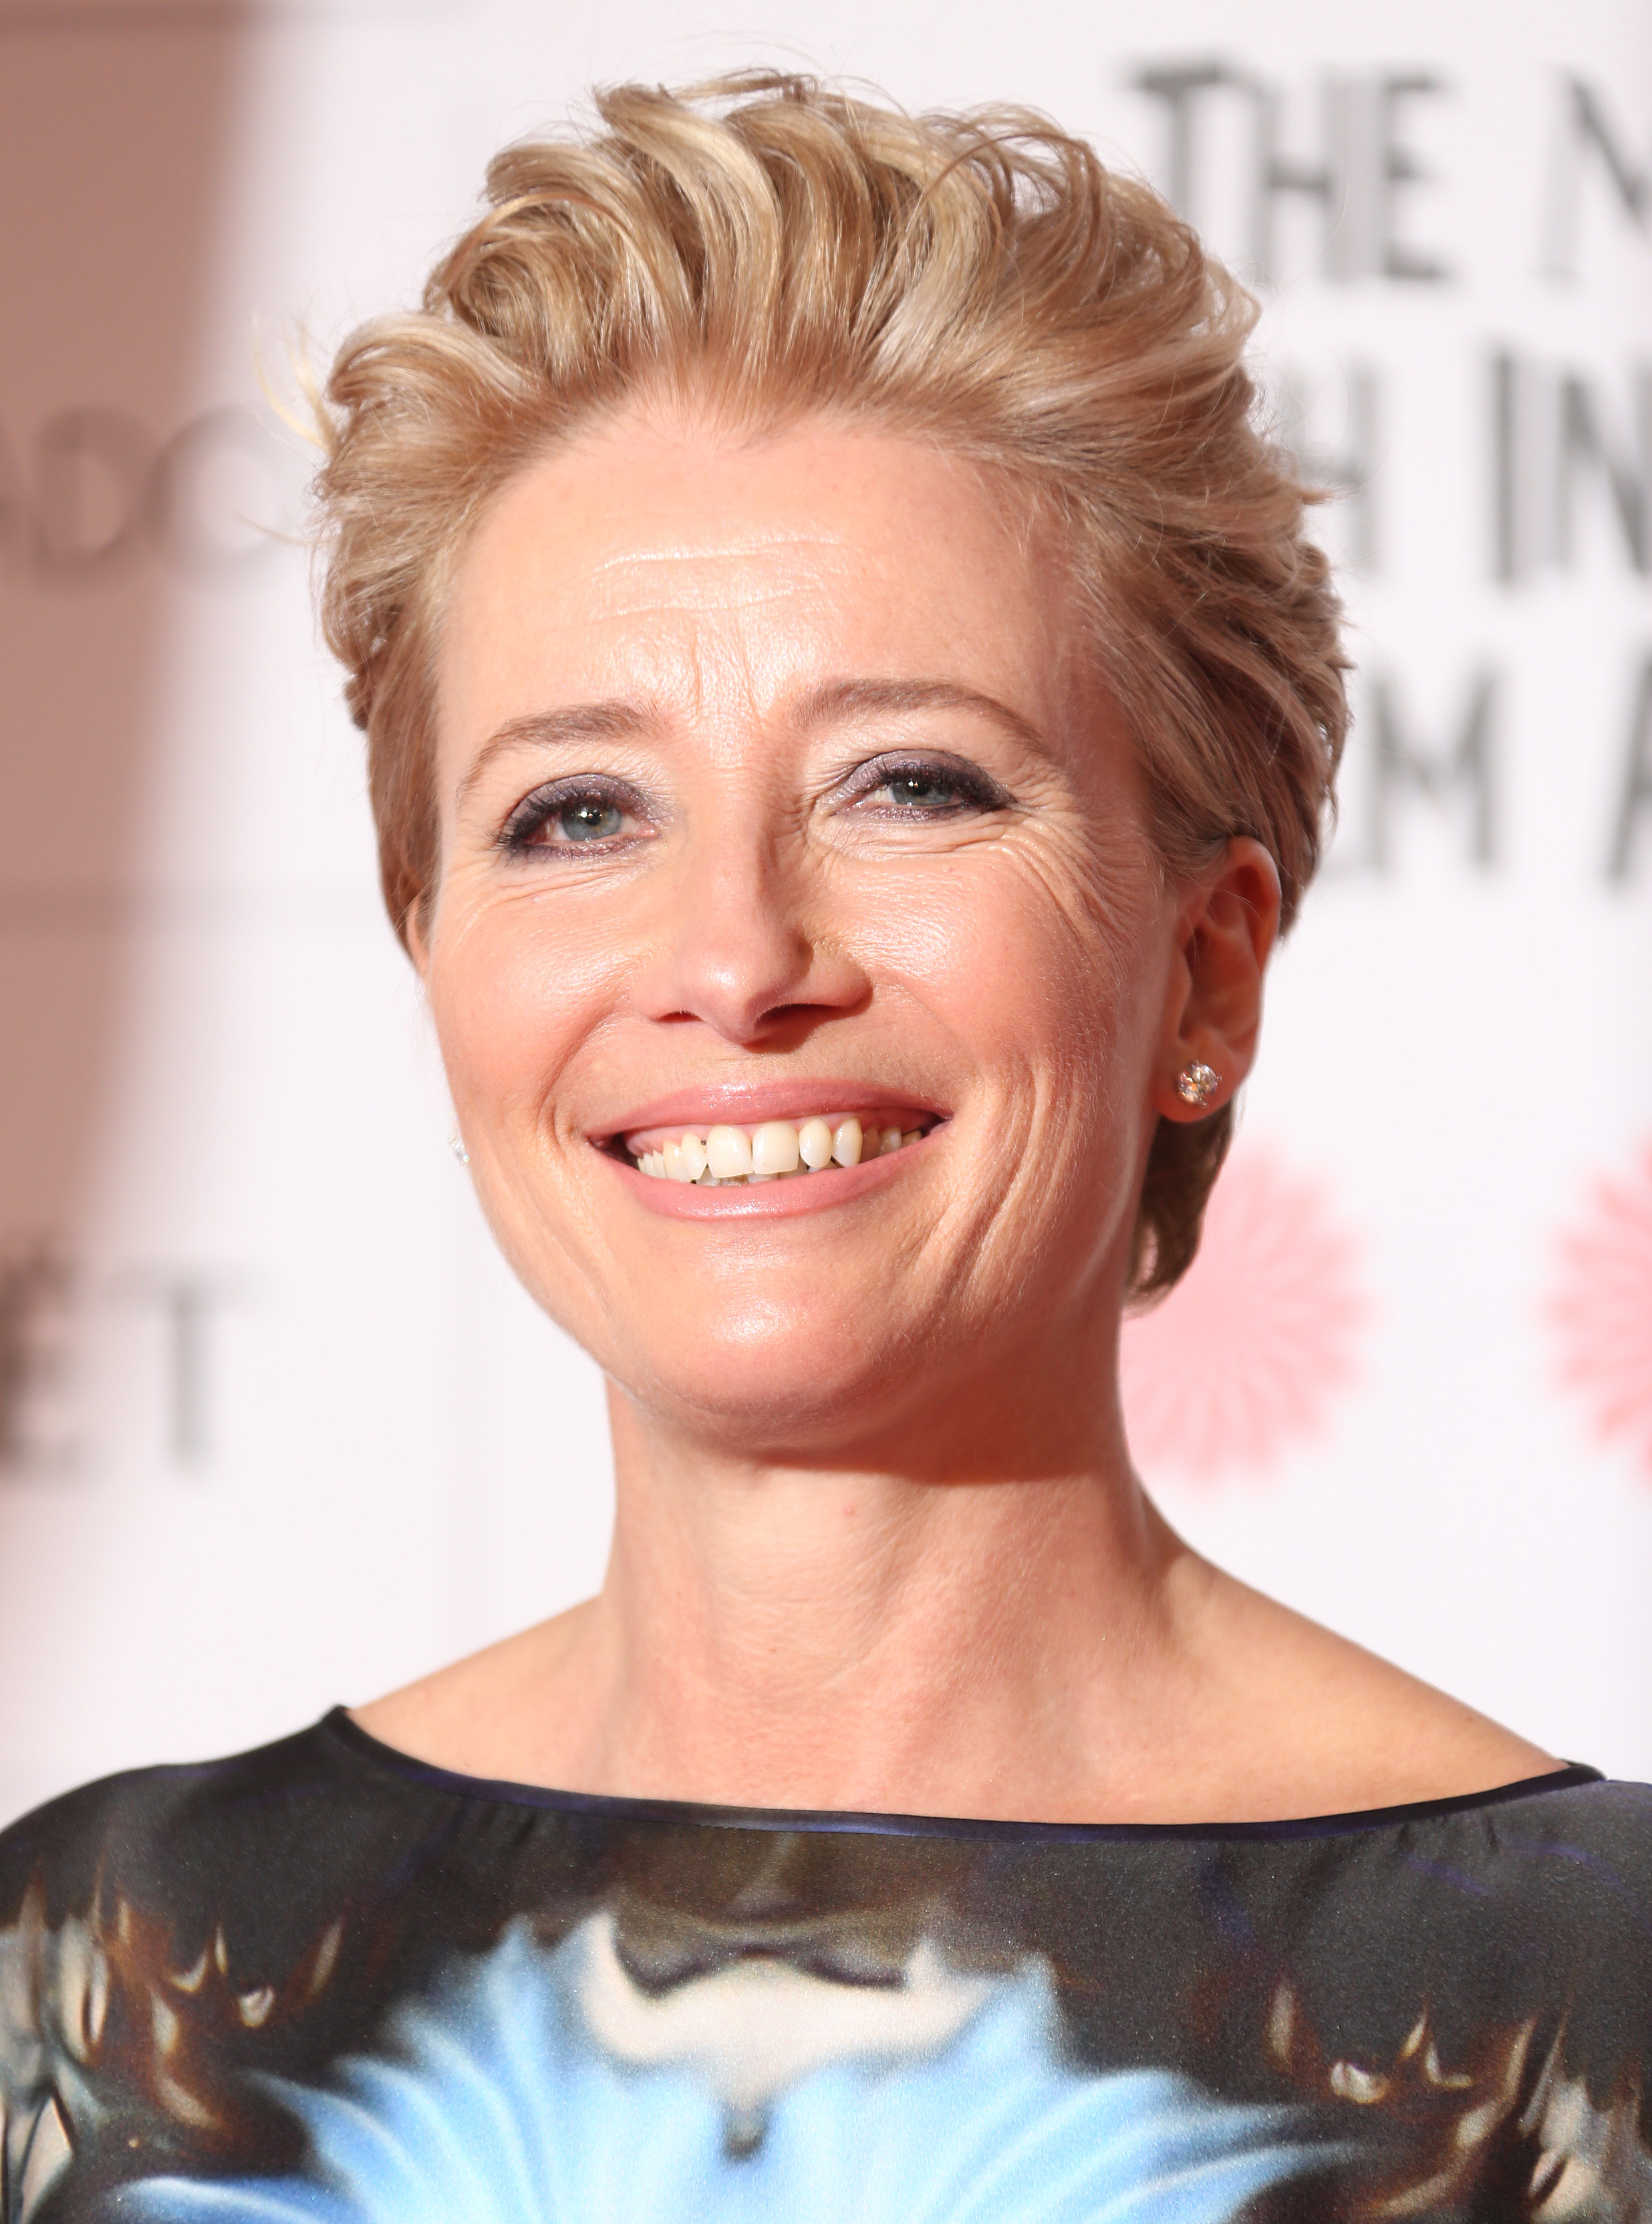 Actress Emma Thompson arrives for the British Independent Film Awards at Old Billingsgate Market in central London, Sunday, Dec. 7, 2014.